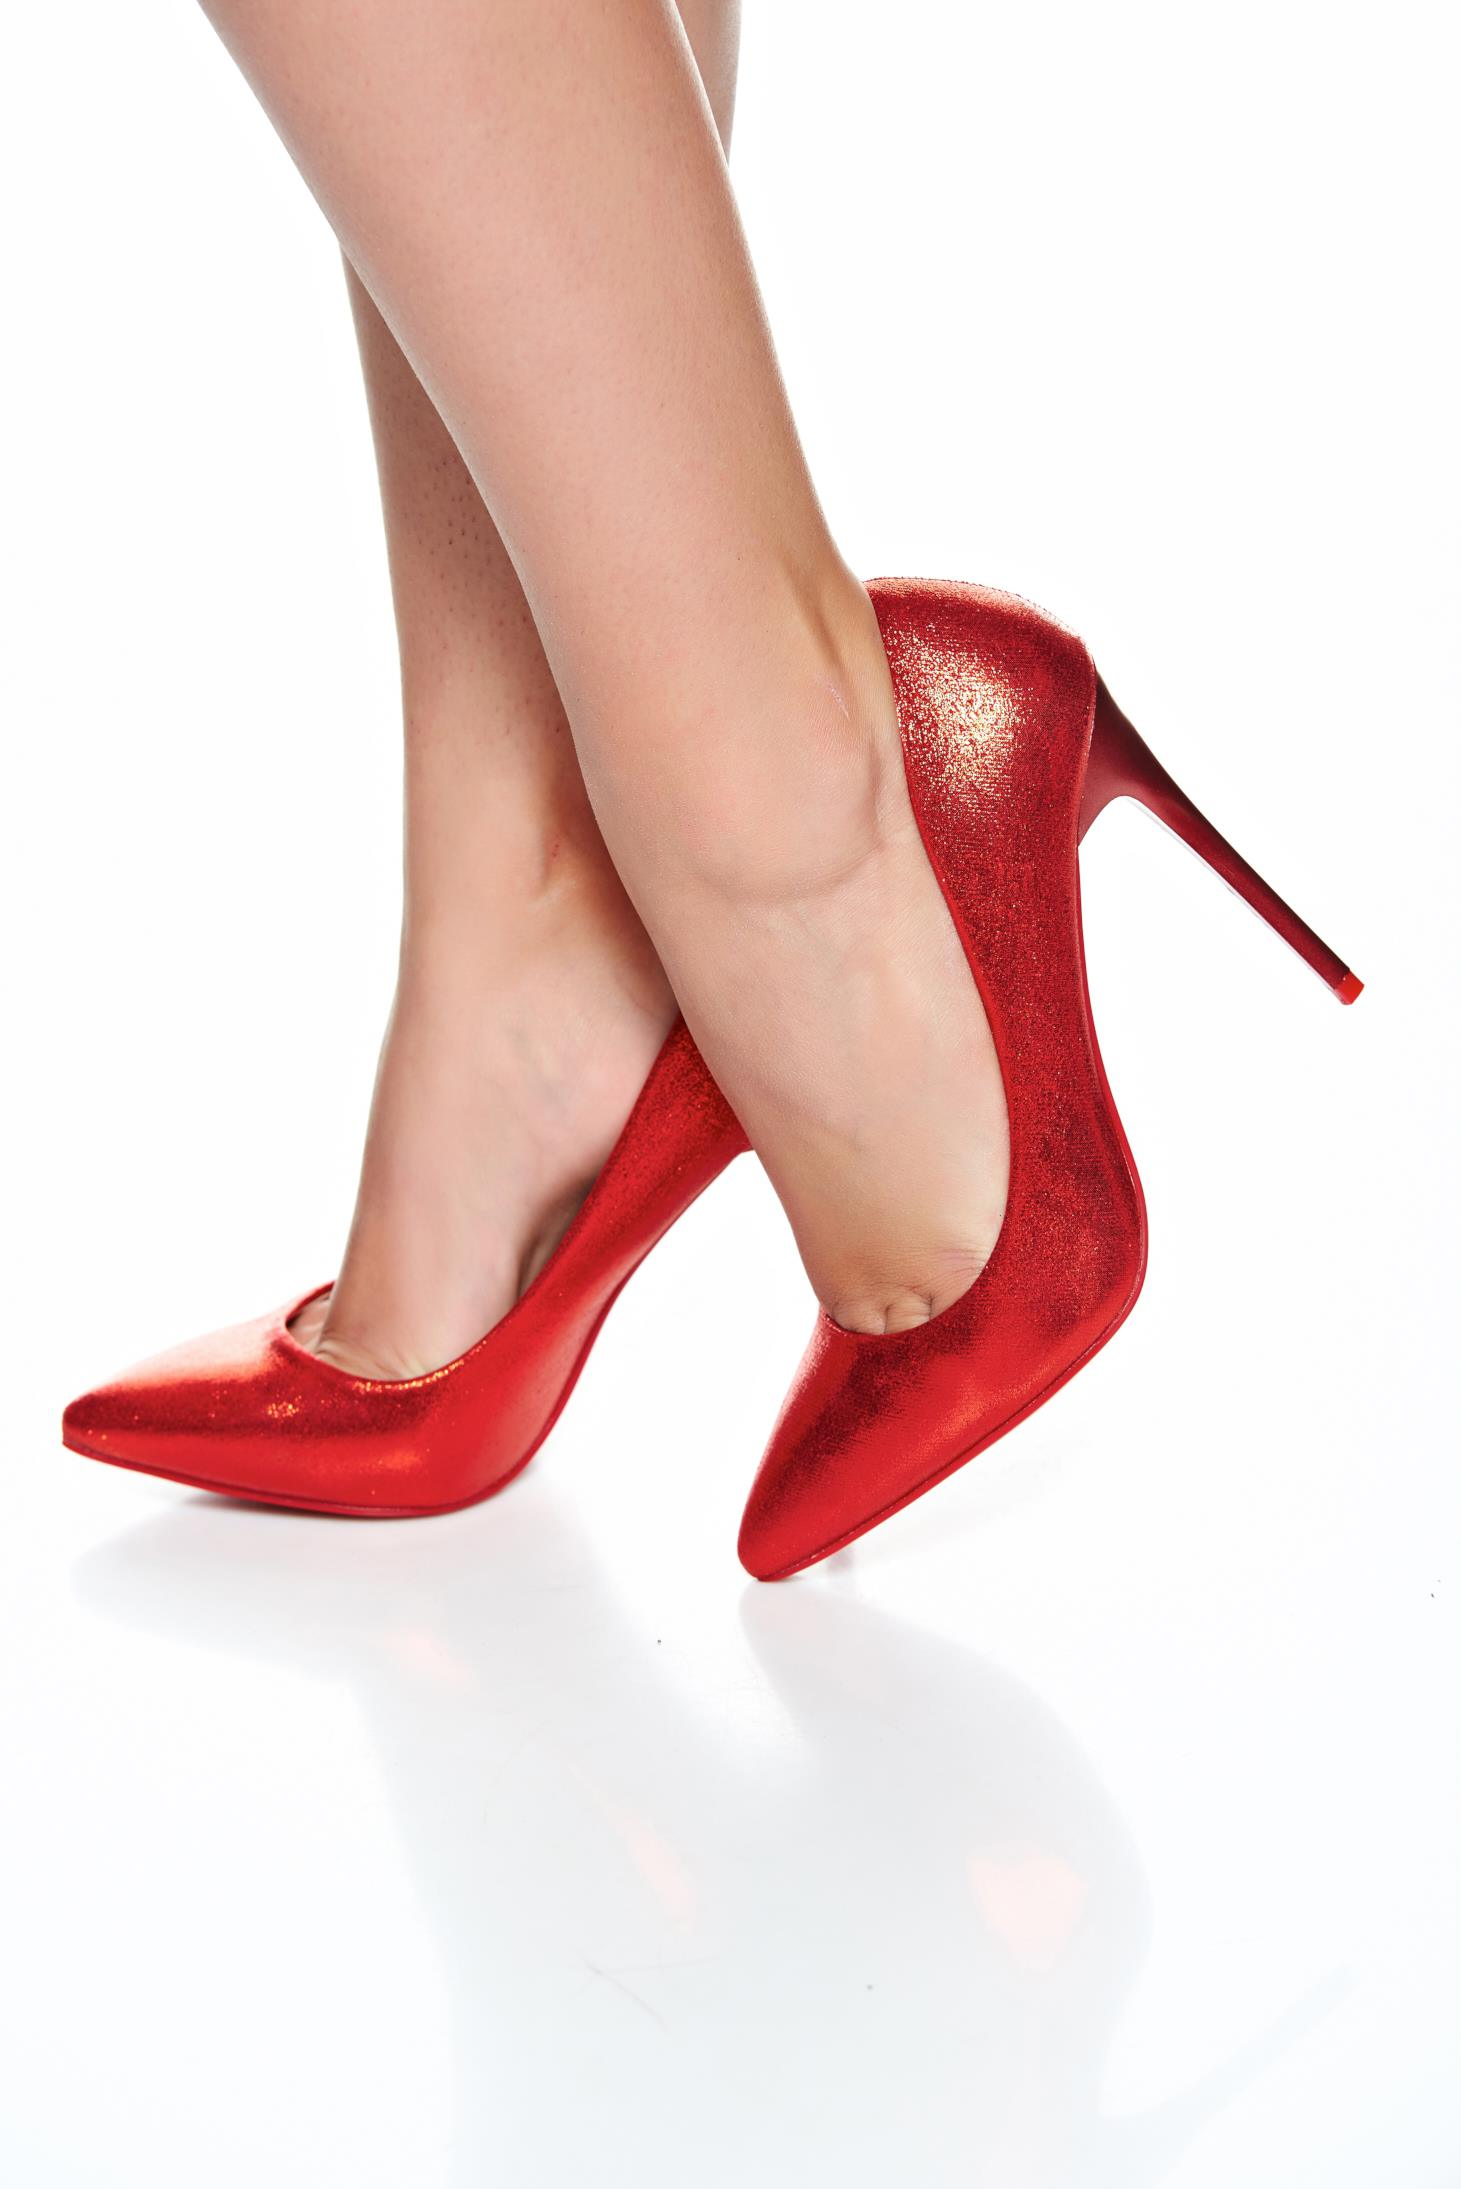 Elegant Red High Heels Ecological Leather Stiletto Shoes